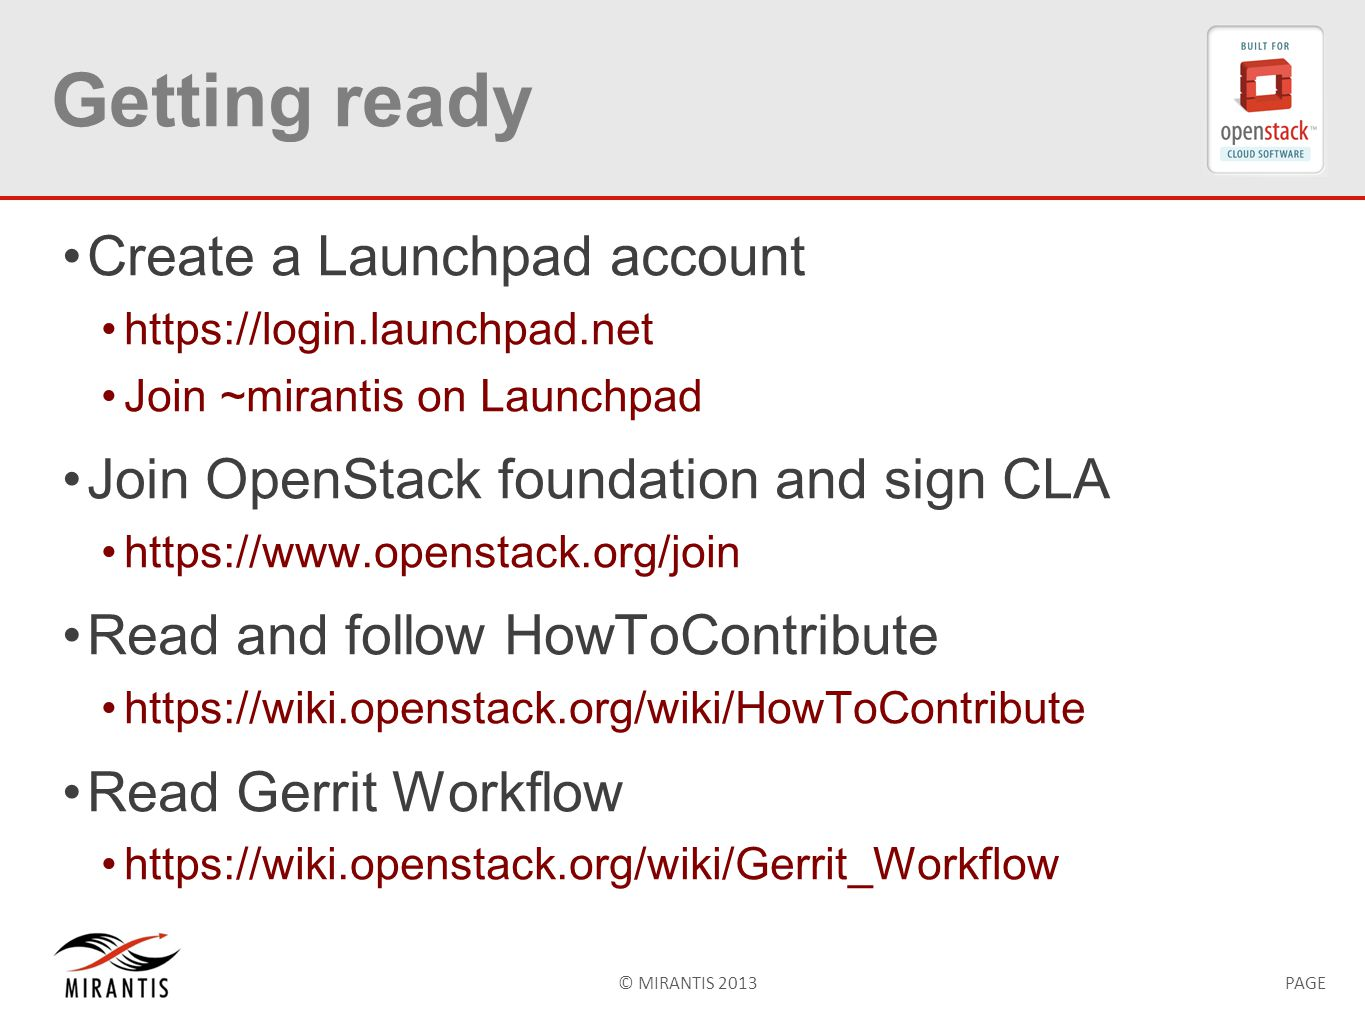 © MIRANTIS 2013PAGE Getting ready Create a Launchpad account https://login.launchpad.net Join ~mirantis on Launchpad Join OpenStack foundation and sign CLA https://www.openstack.org/join Read and follow HowToContribute https://wiki.openstack.org/wiki/HowToContribute Read Gerrit Workflow https://wiki.openstack.org/wiki/Gerrit_Workflow